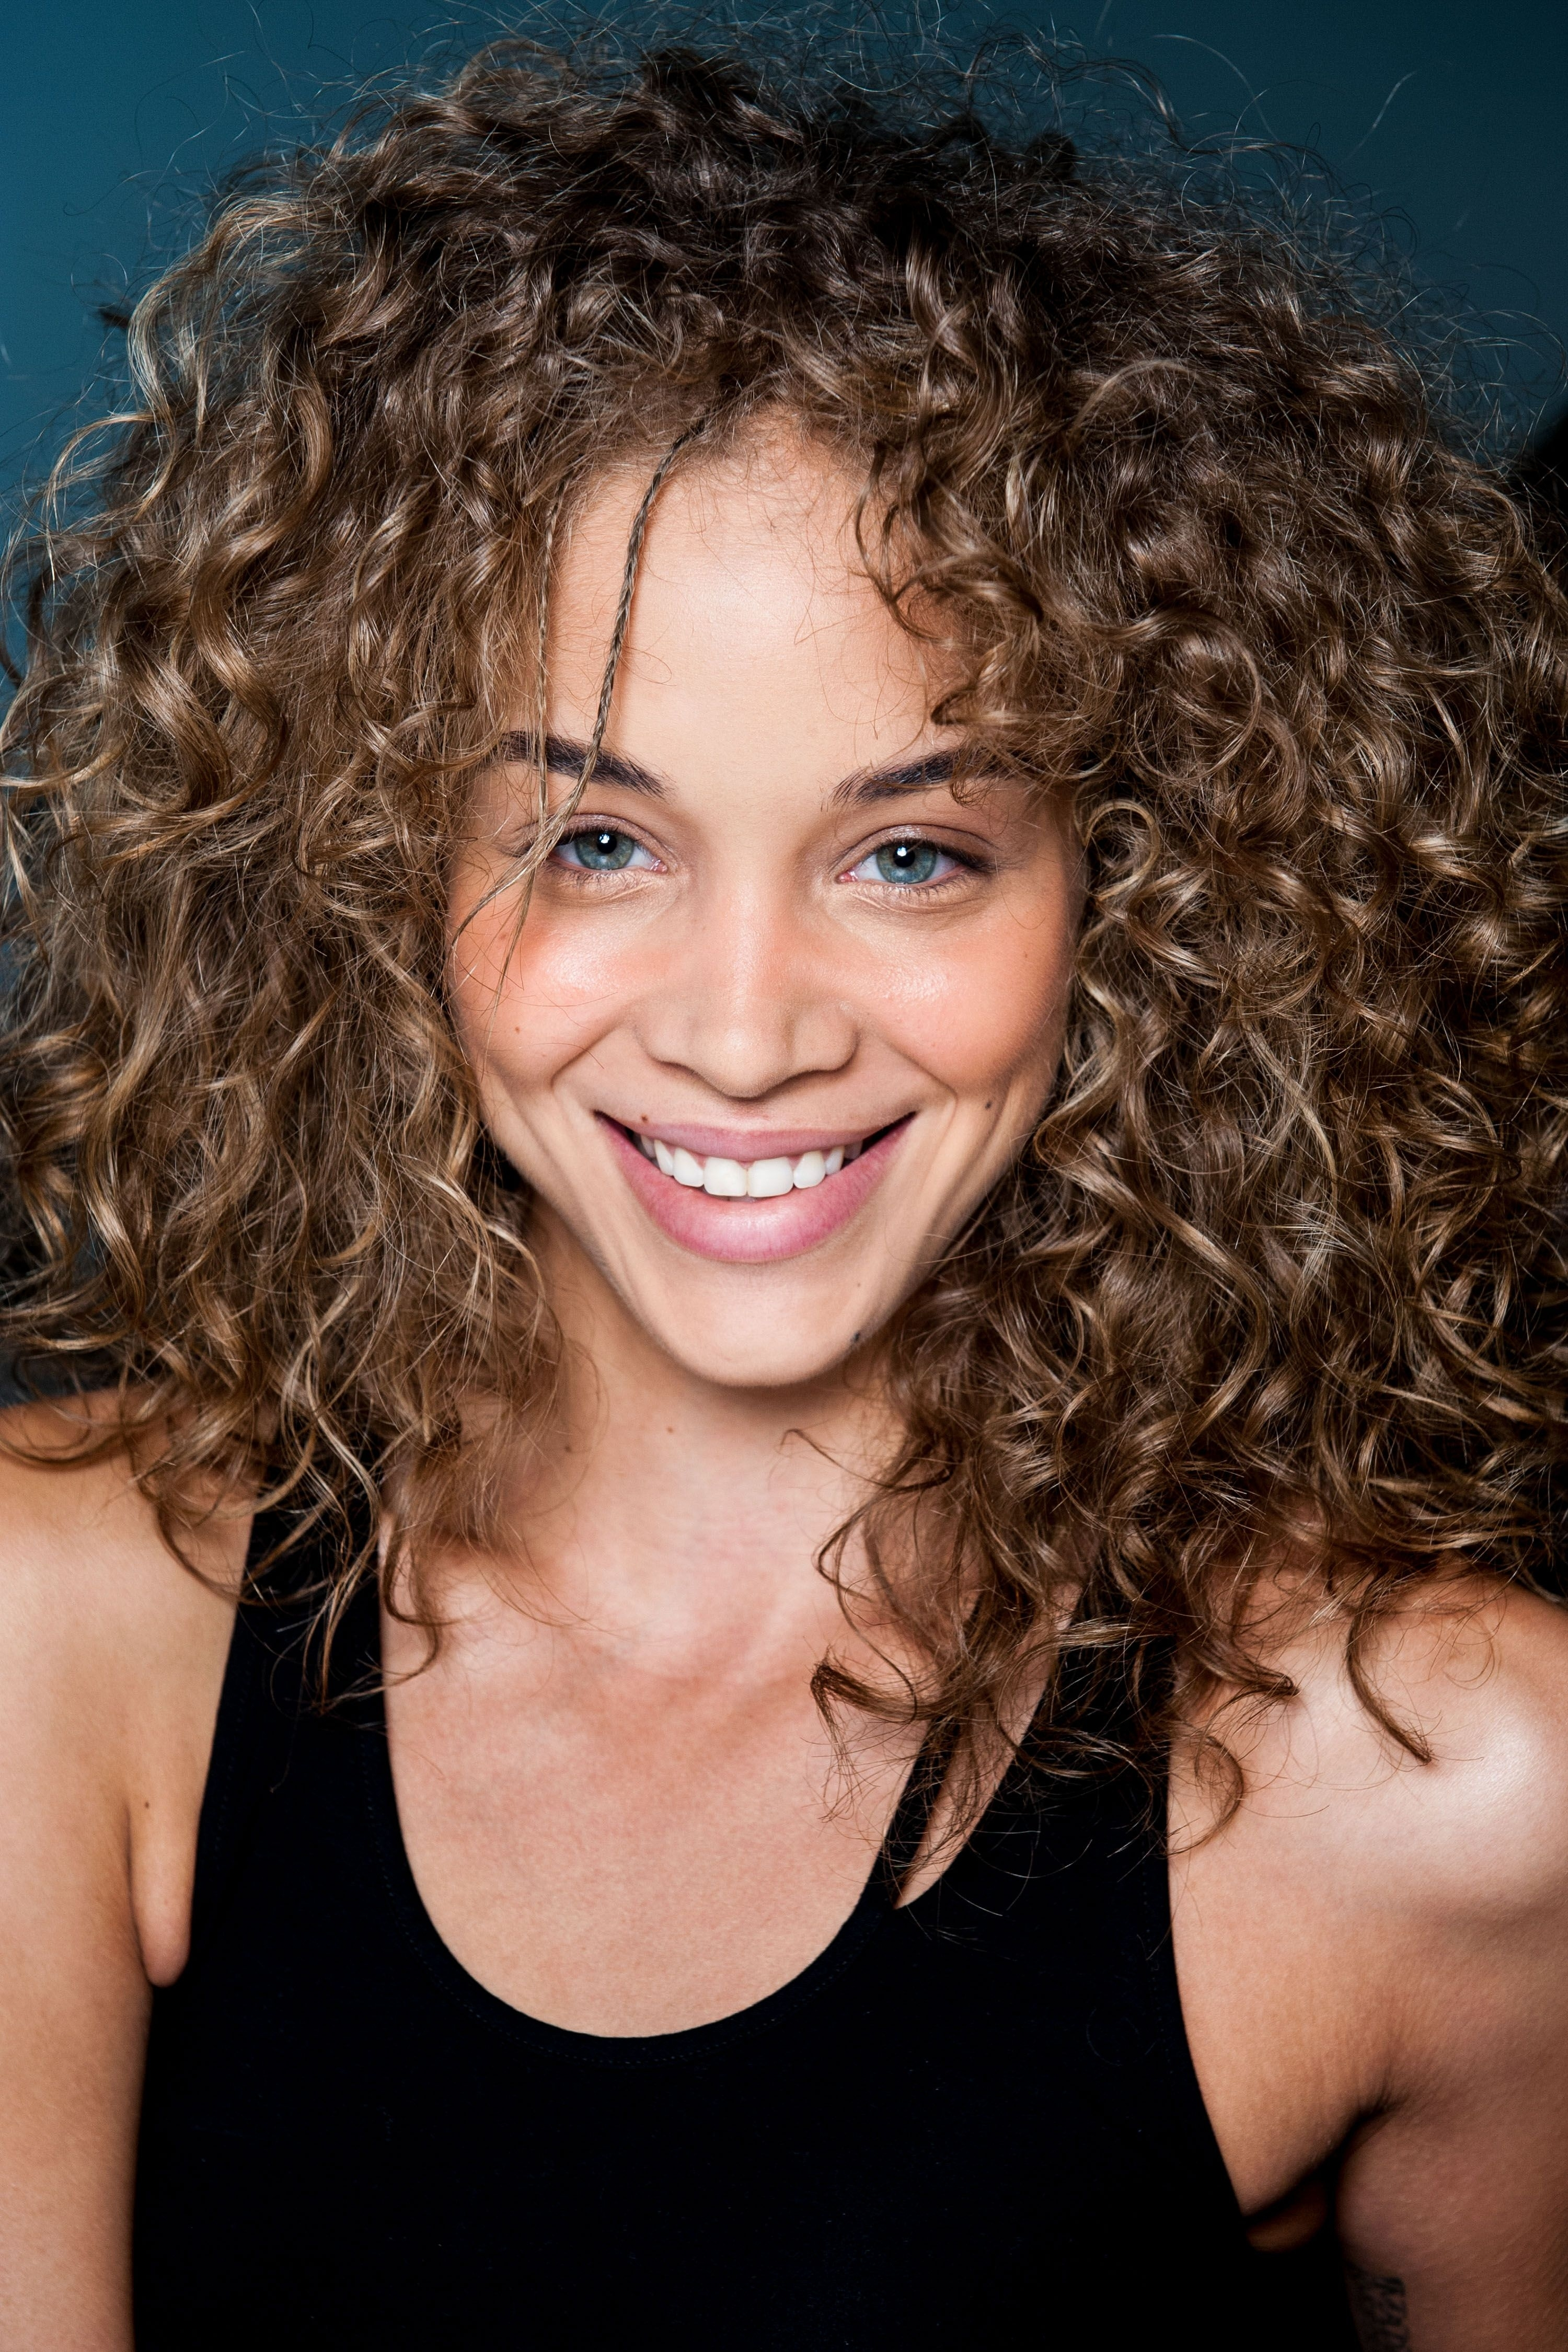 Cheveux-Frises-Phalbm24591138 (3000×4500) | $$$$A1 | Pinterest throughout Haircuts For Wavy Hair Heart Shaped Face